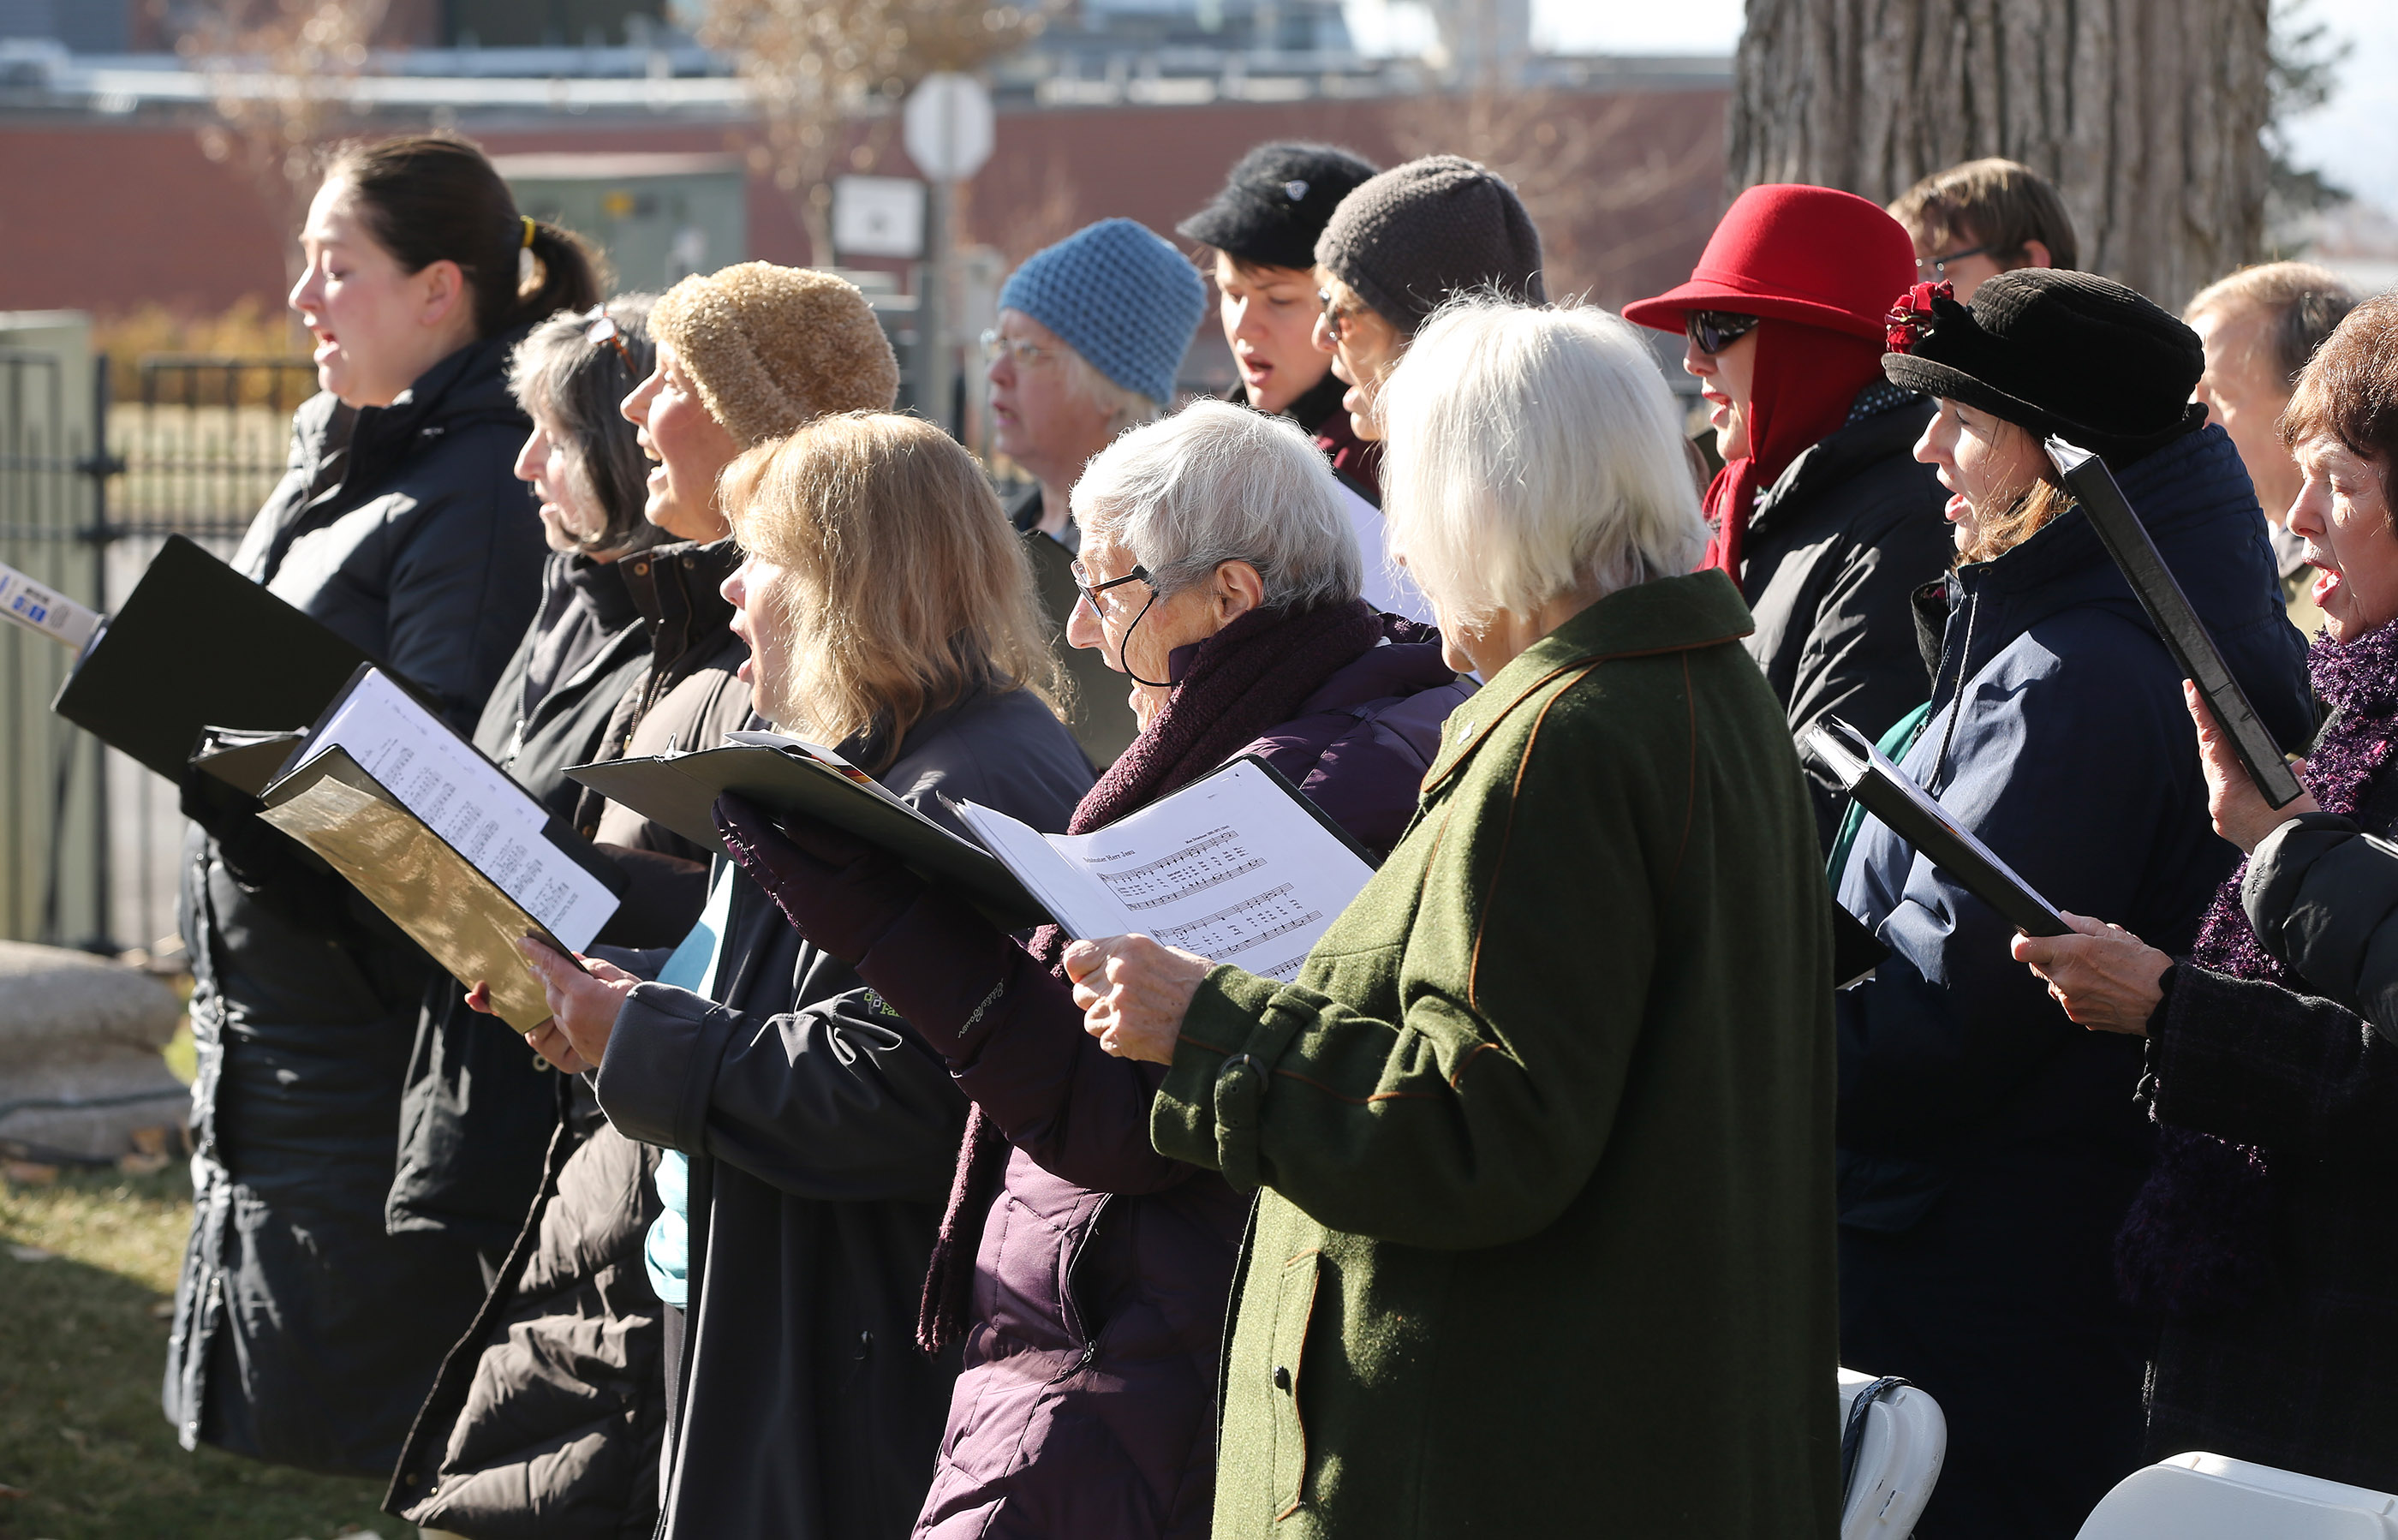 German Chorus Harmonie sing during the German Day of Remembrance (Volkstrauertag) at Fort Douglas Military Cemetery in Salt Lake City on Sunday, Nov. 18, 2018.